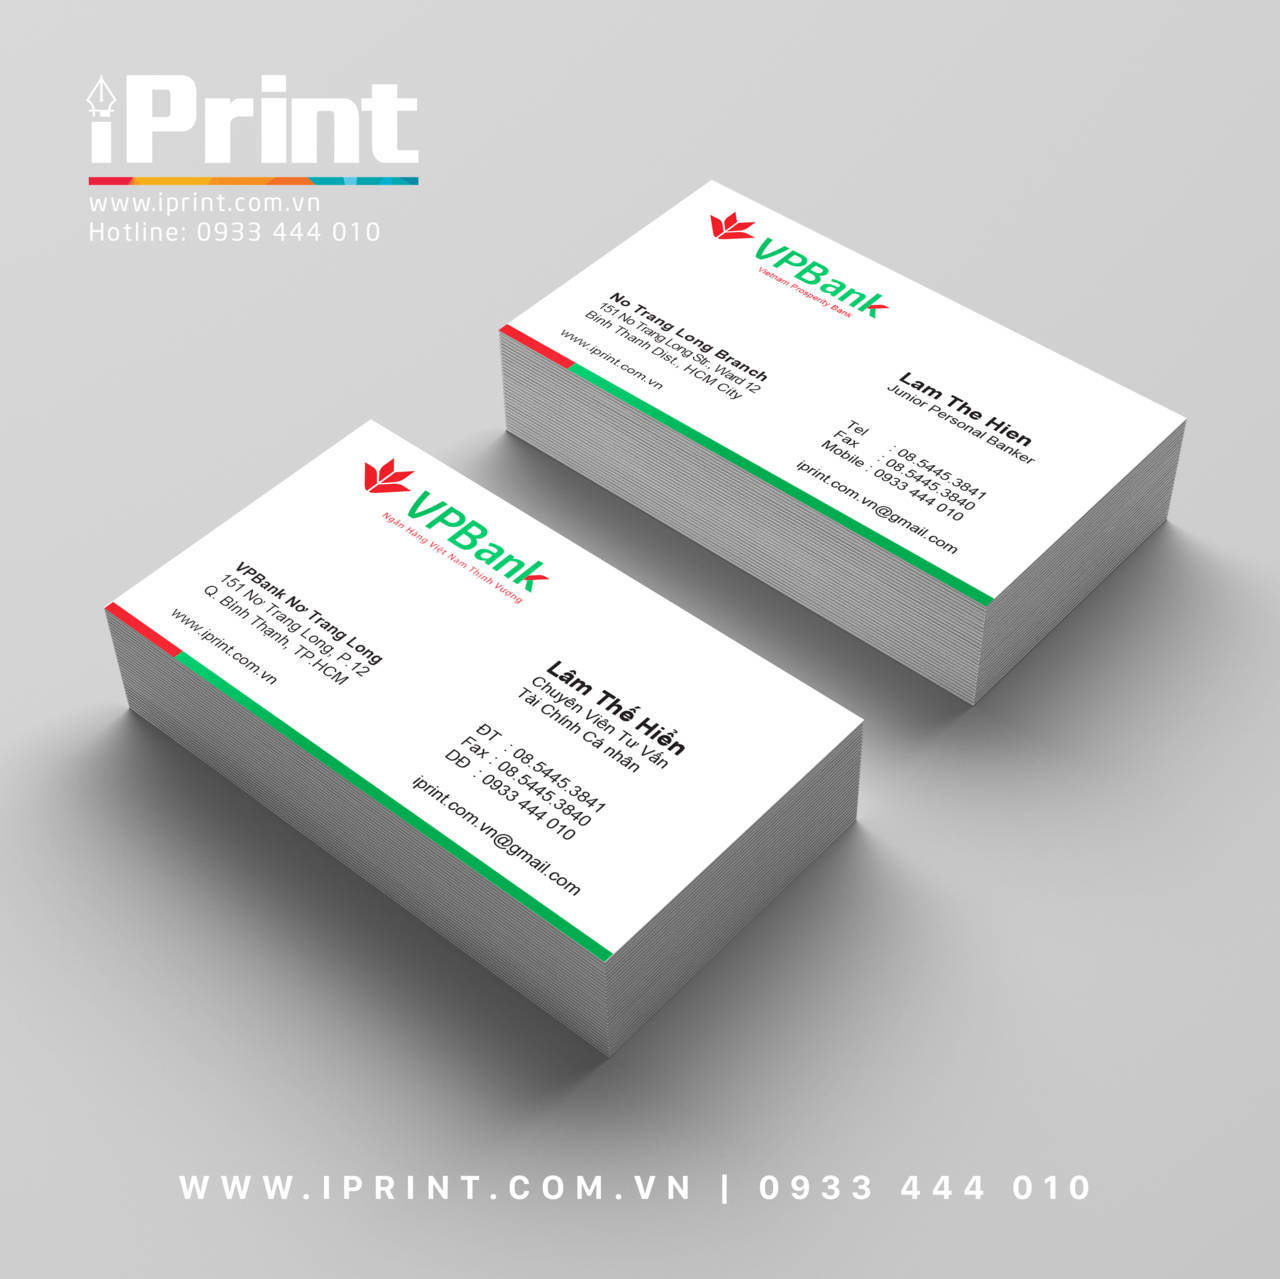 mau-name-card-ngan-hang-vpbank www.iprint.com.vn